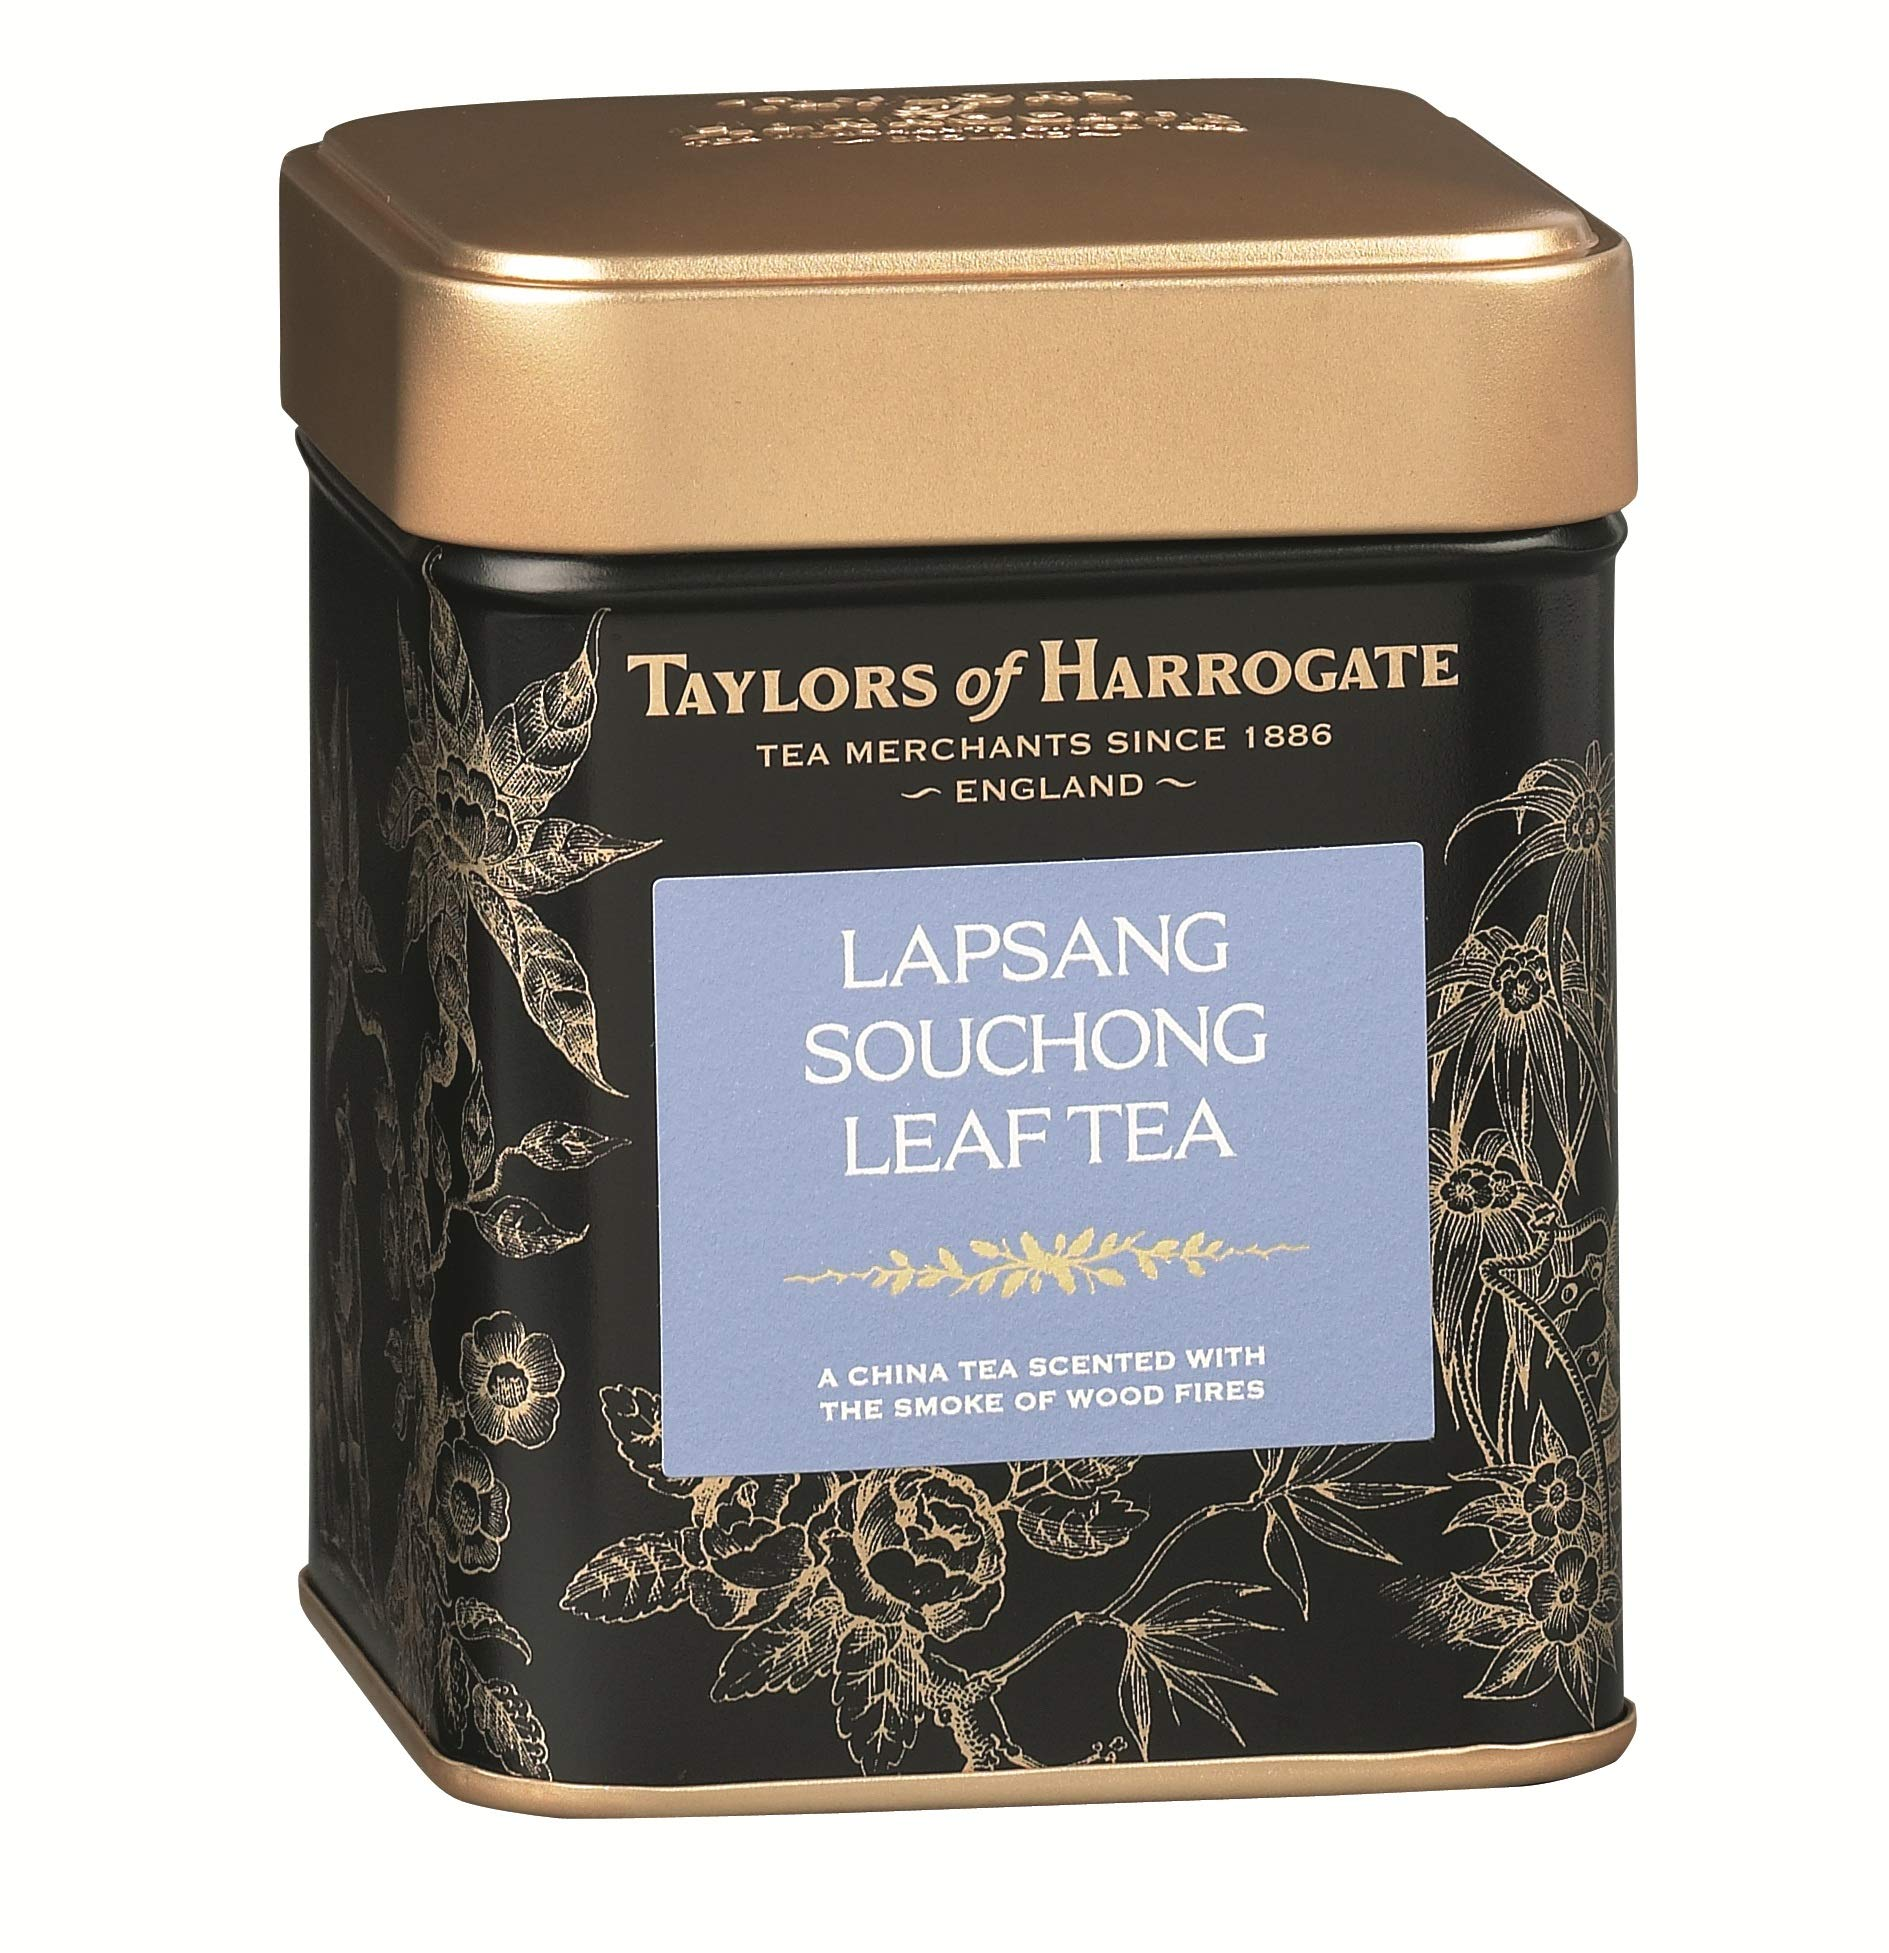 Taylors of Harrogate Lapsang Souchong Loose Leaf, 4.41 Ounce Tin (Pack of 2)